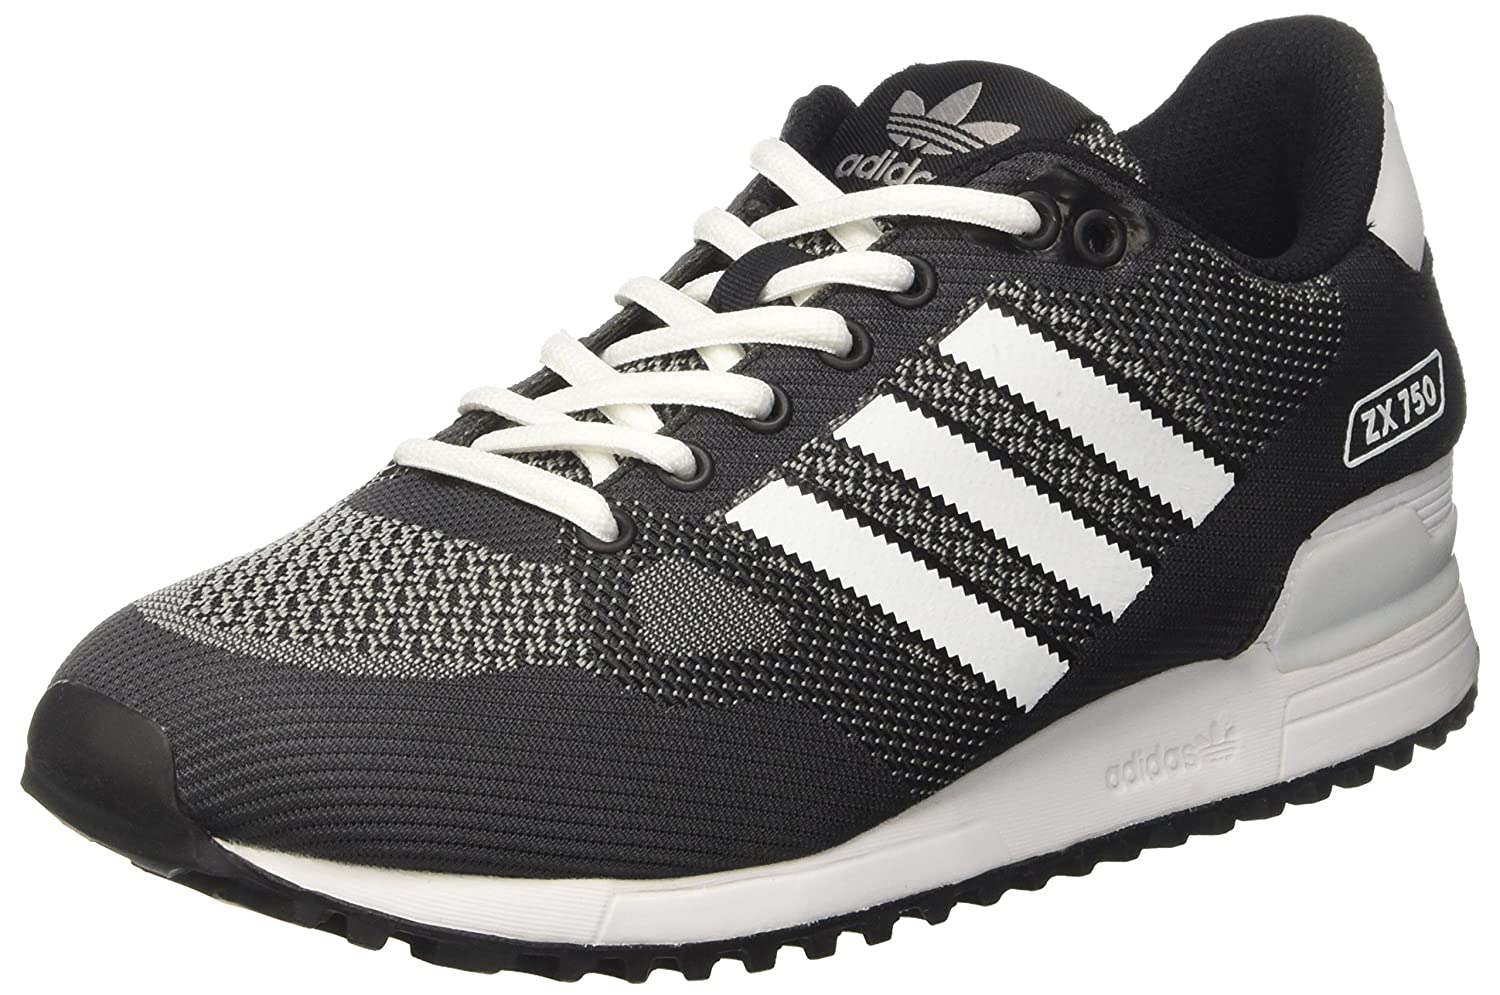 buy online 5fb47 21416 Adidas - ZX 750 WV - Color: Black-Blue - Size: 7.5US: Amazon ...